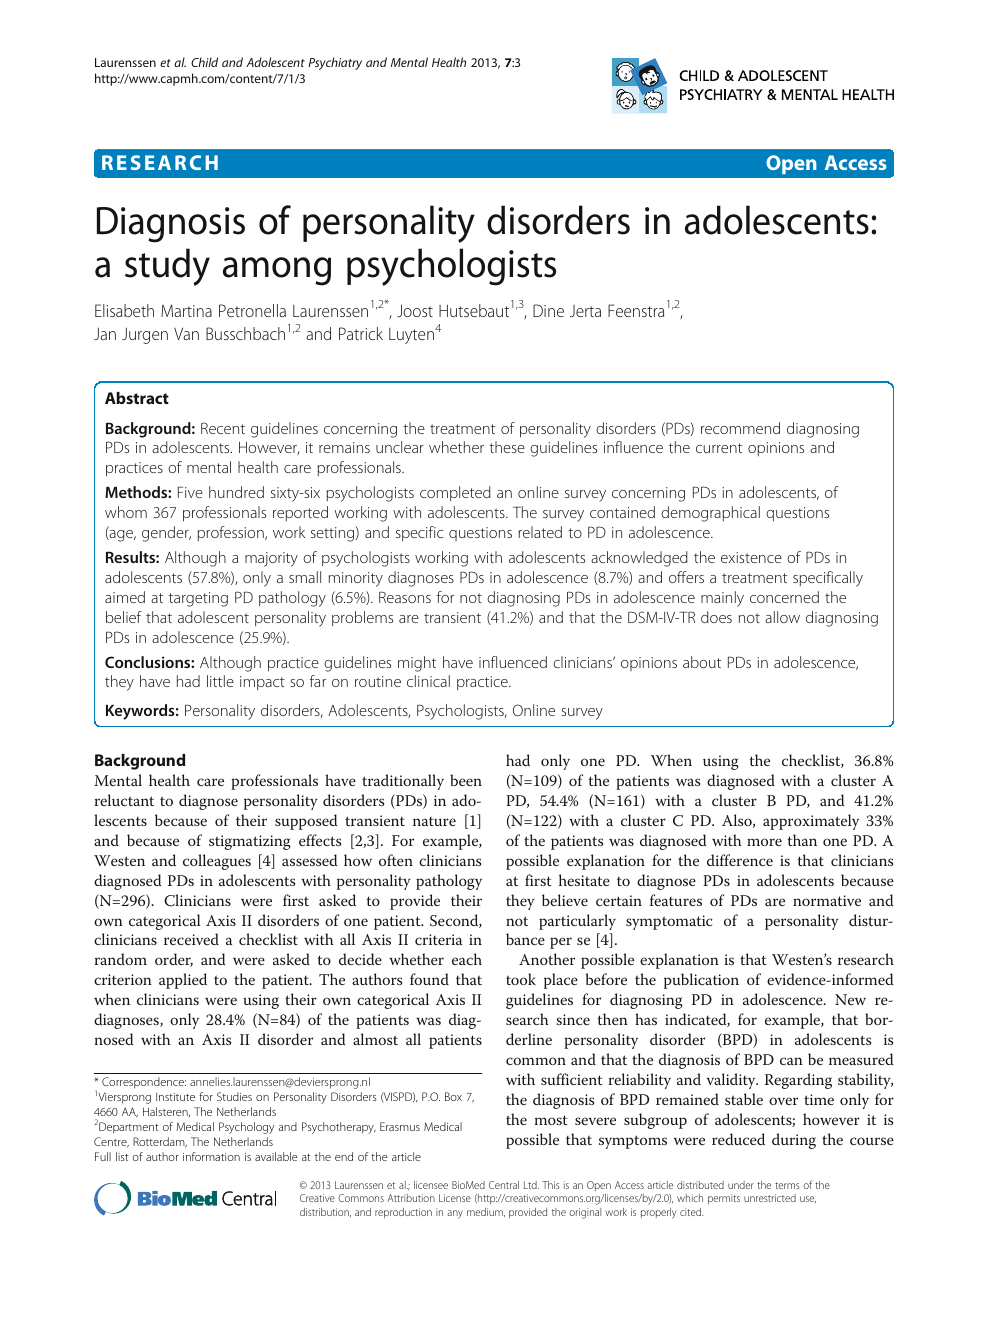 Diagnosis of personality disorders in adolescents: a study